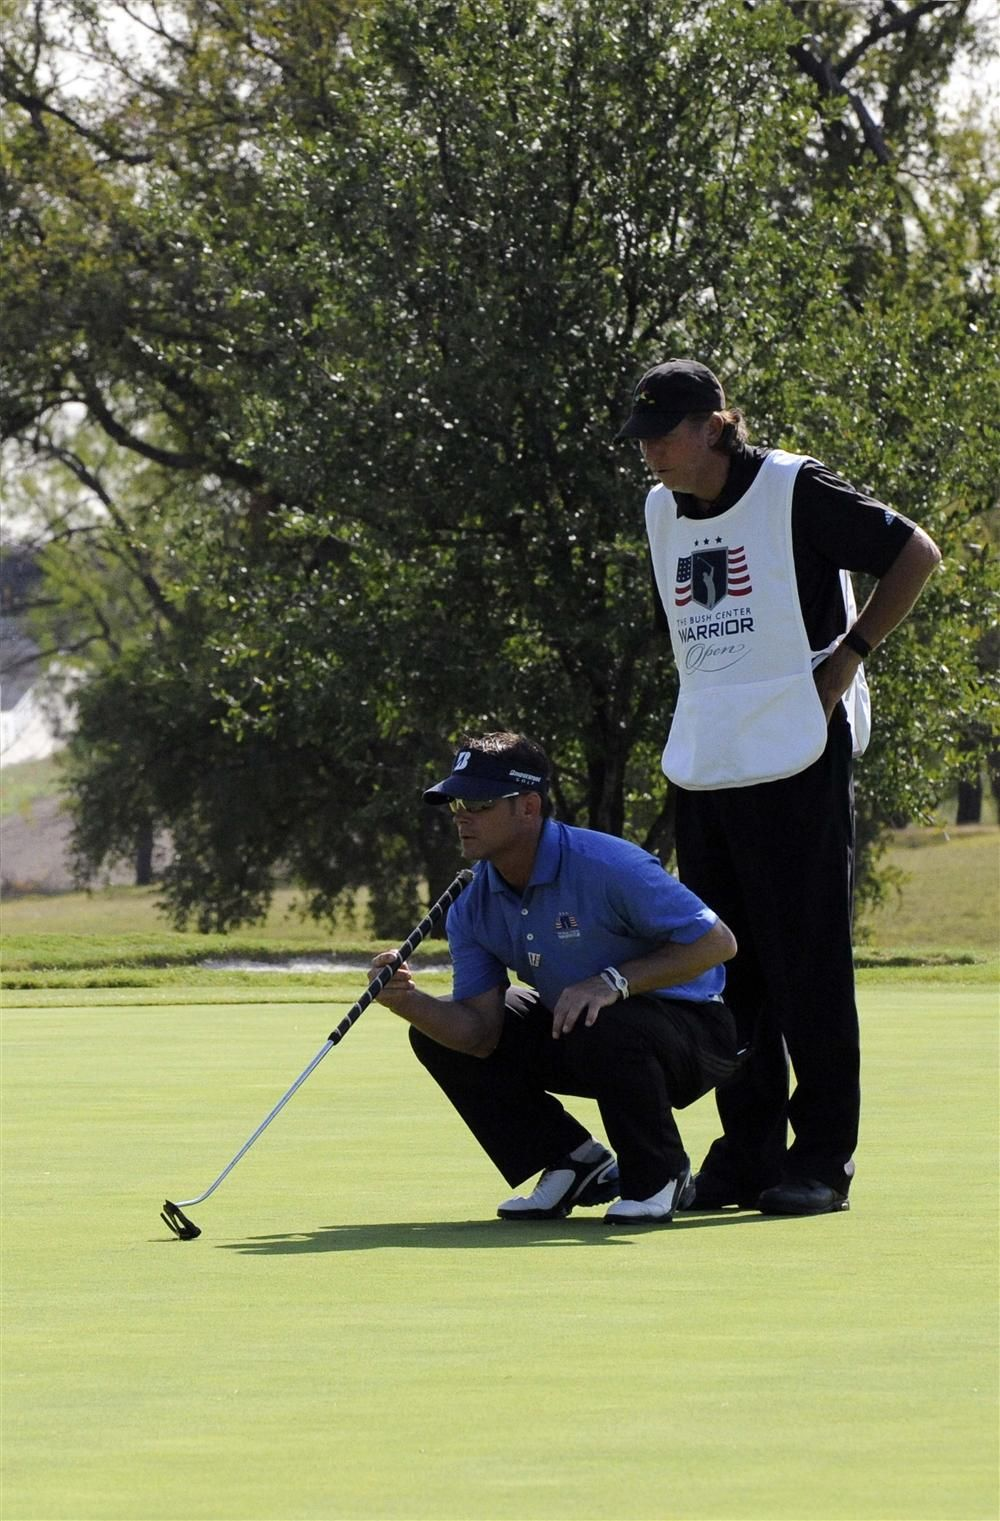 Photo courtesy of Grant Miller